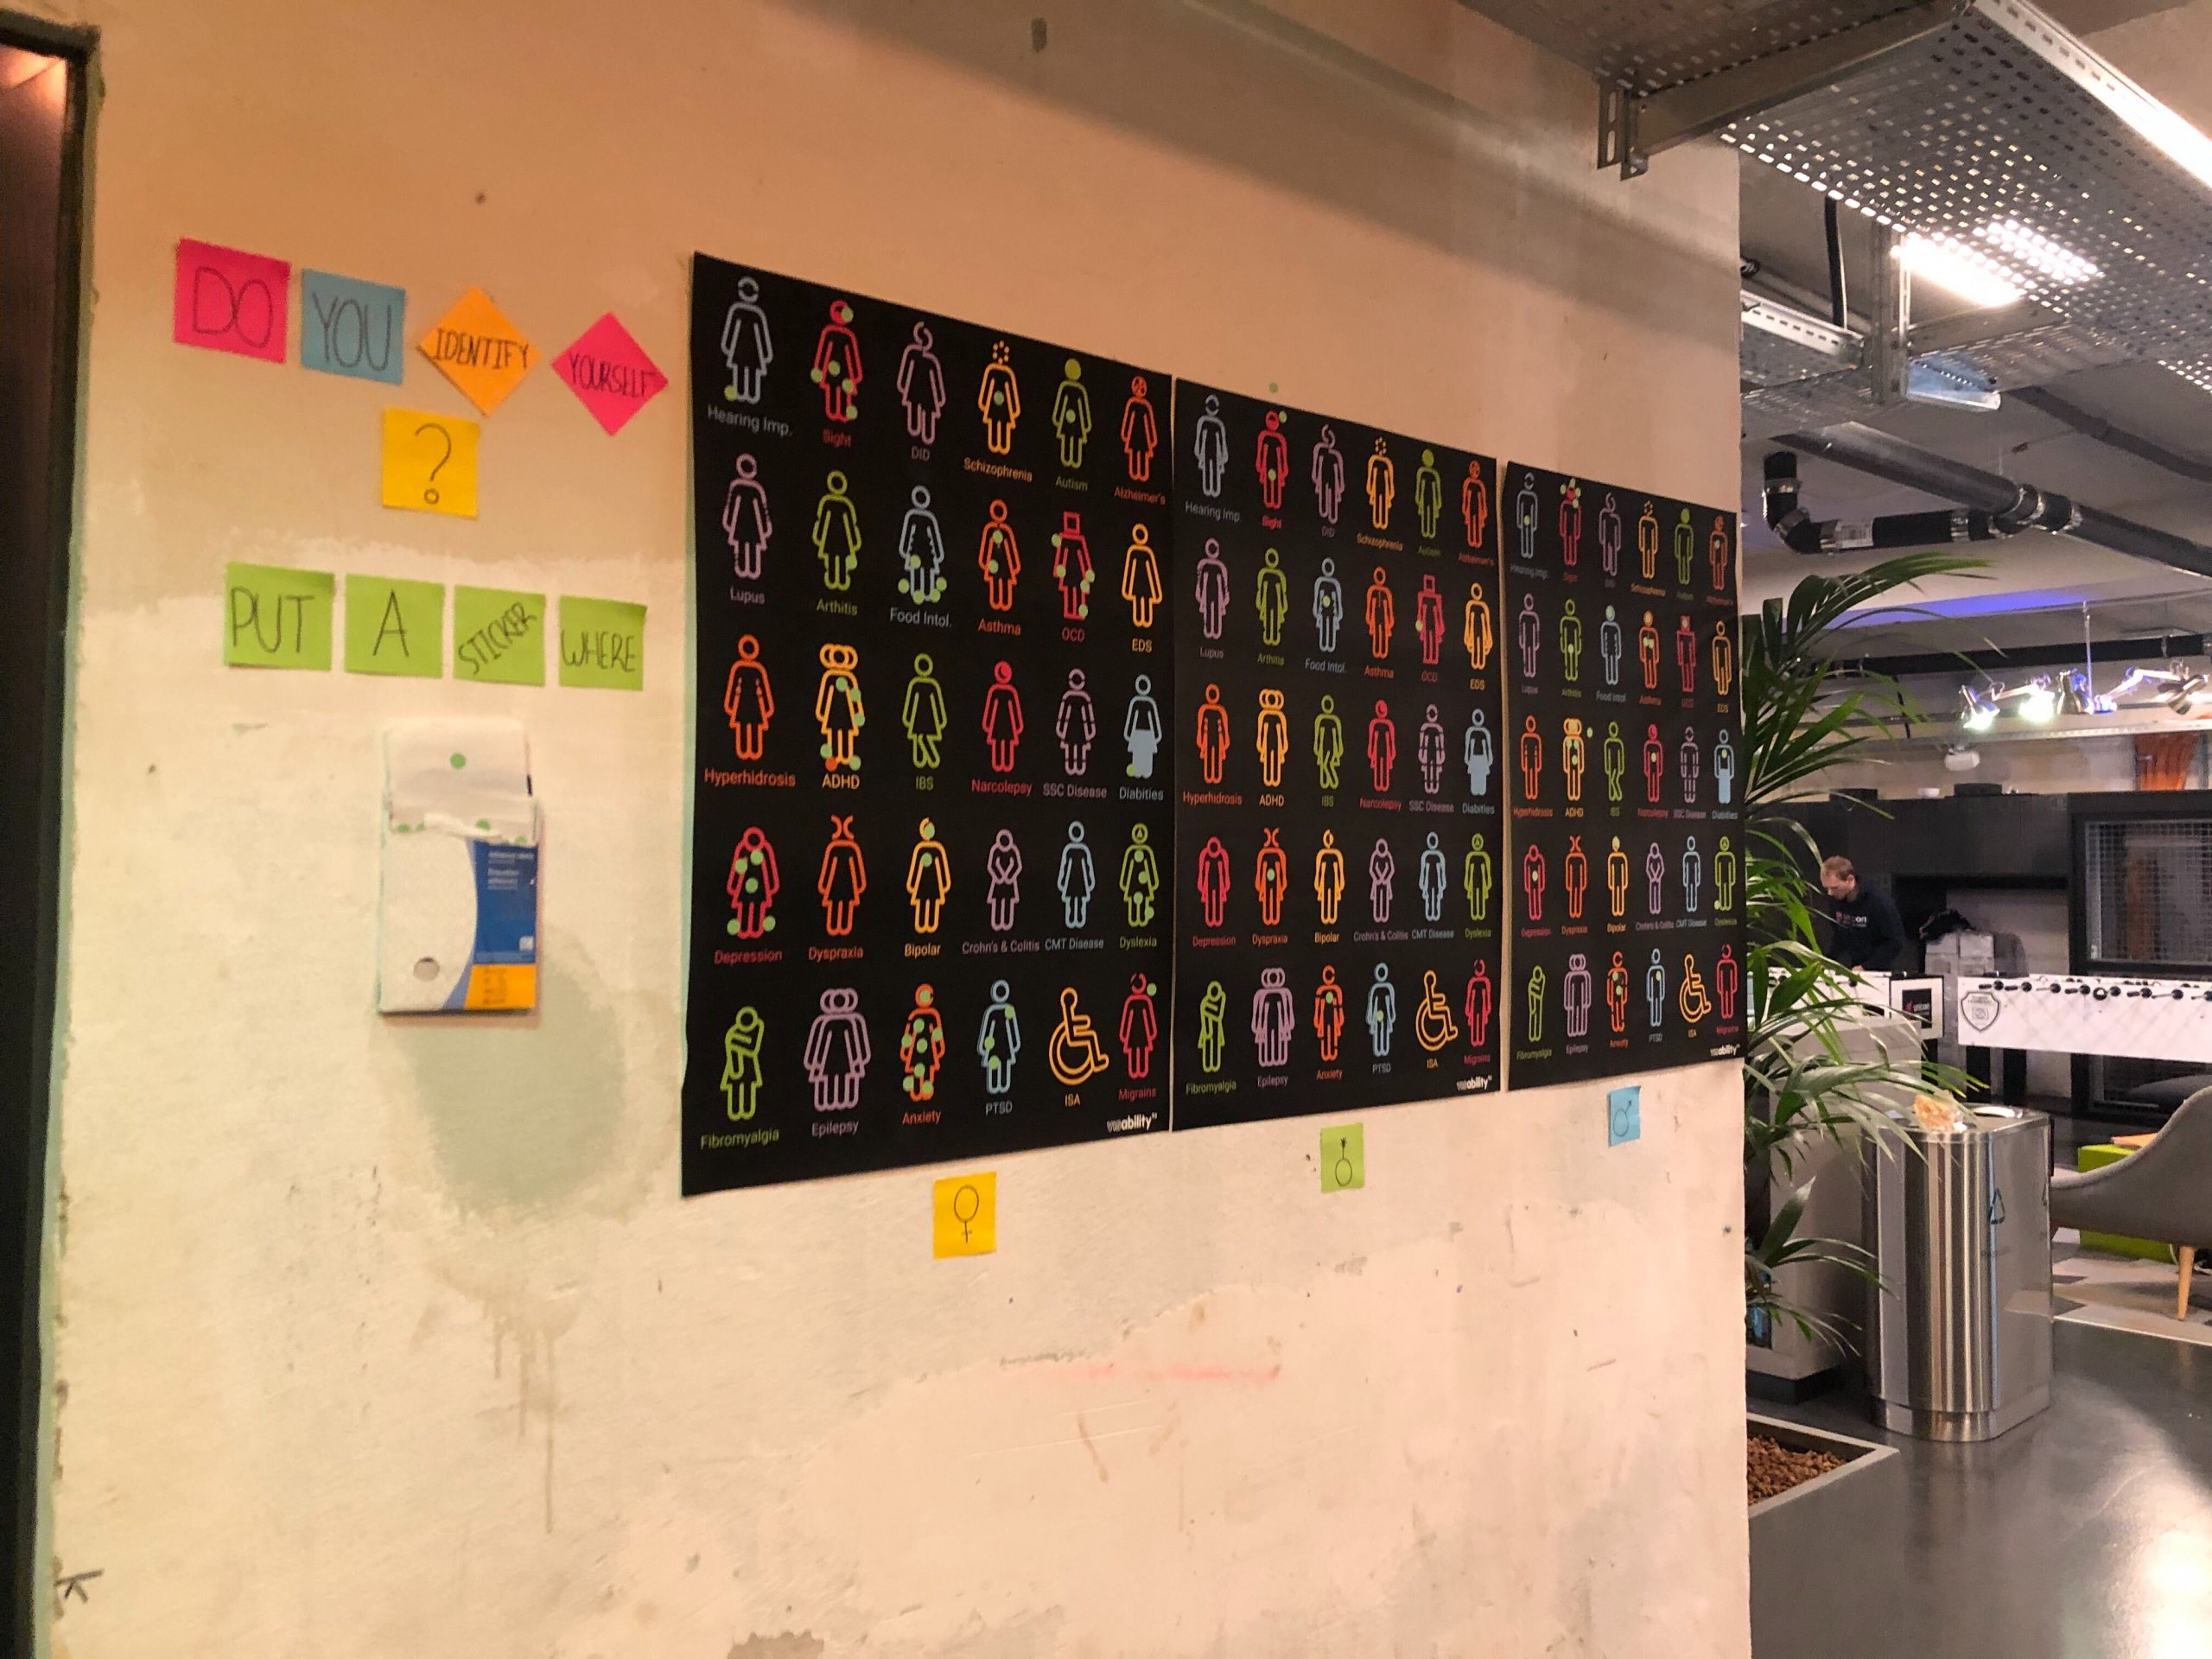 Visability 93 posters at CODE